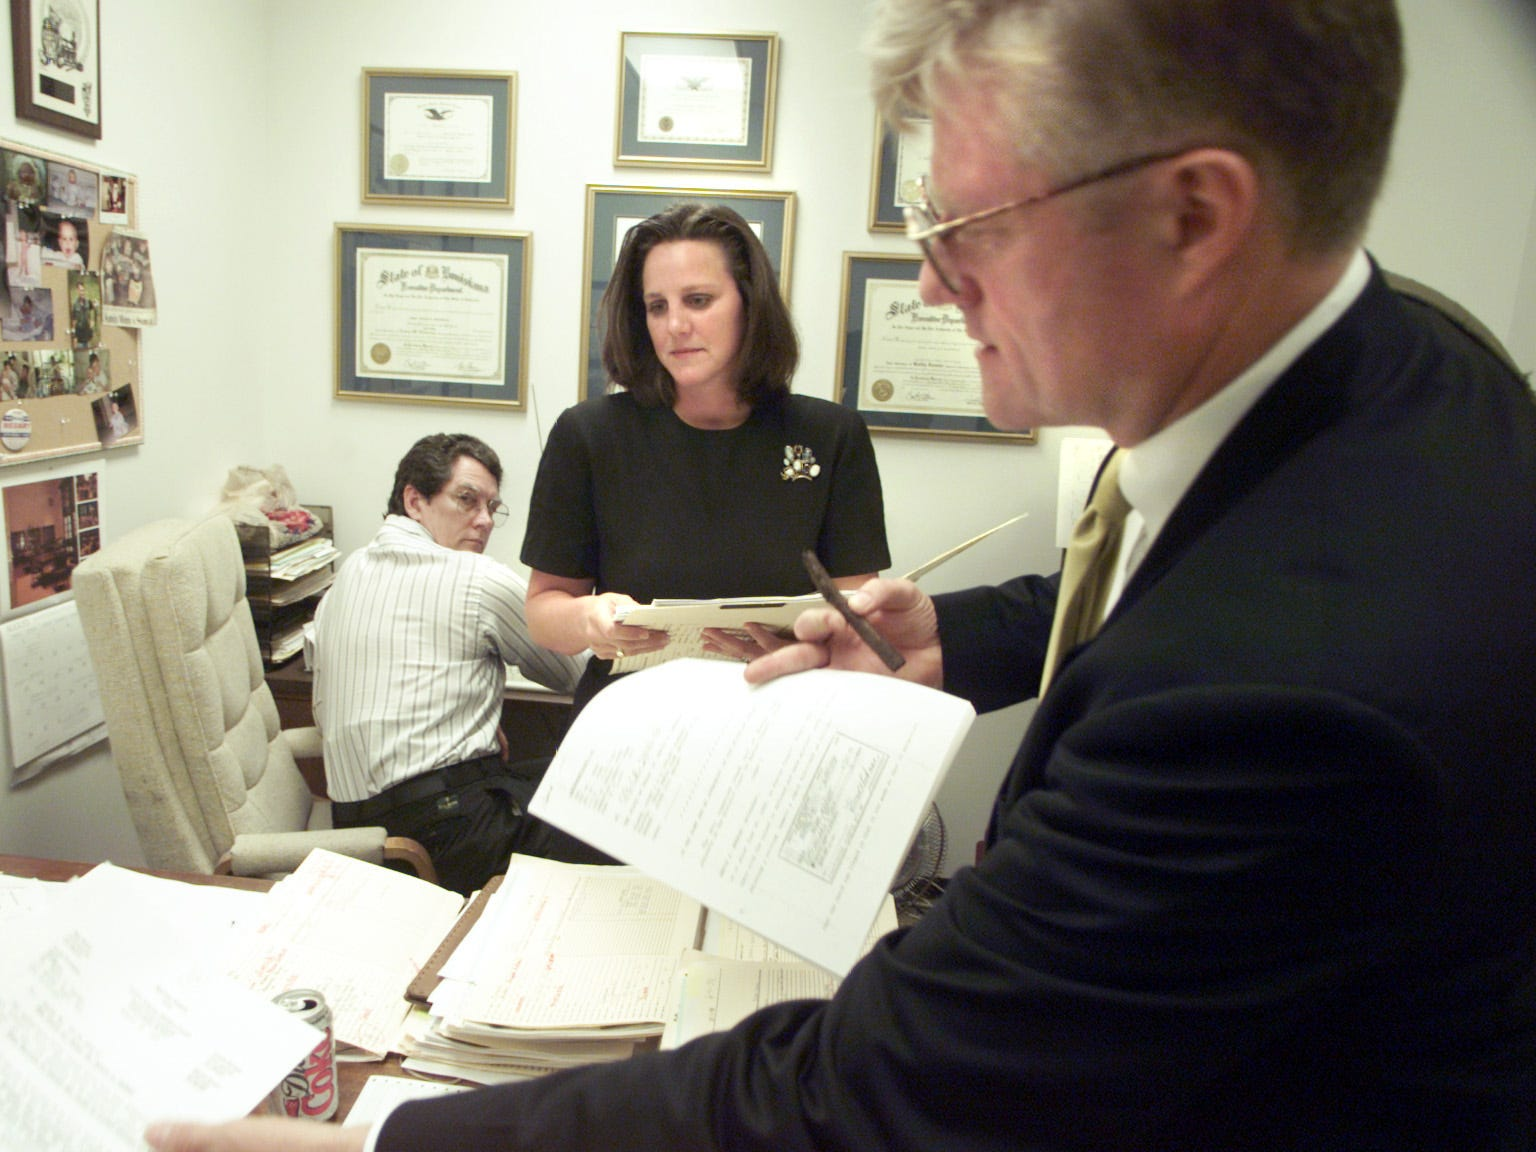 Then Assistant District Attorney Missy Medary and Chip Rudden discuss a case in 1999. Judge Missy Medary is the 347th District Court Judge and is the first woman to serve as Presiding Judge of the Fifth Administrative Judicial Region.